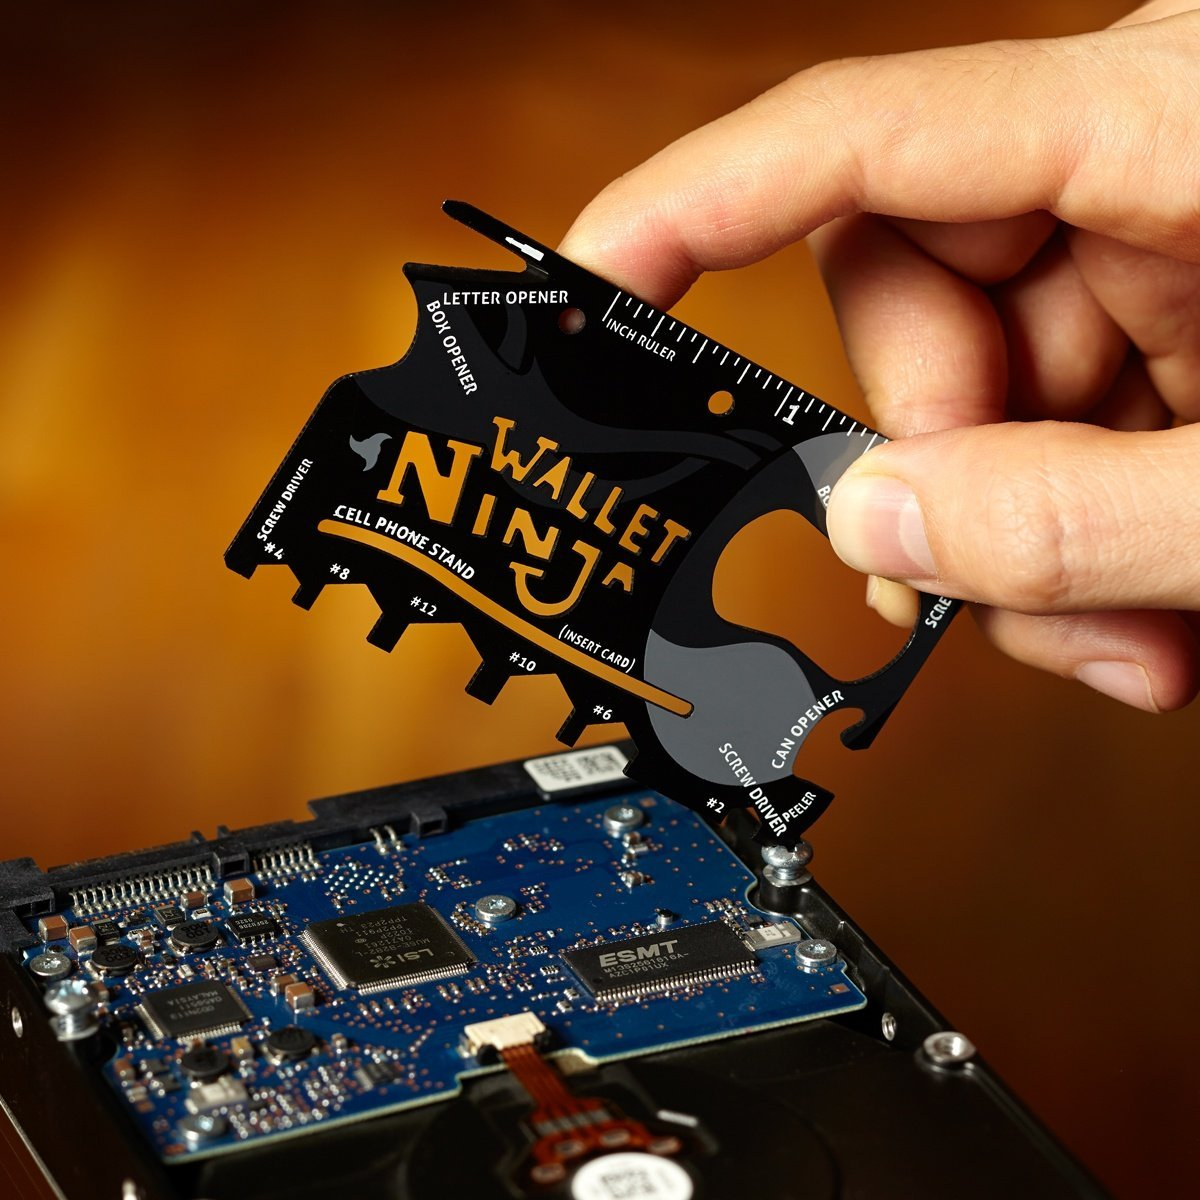 ThumbsUp! Wallet Ninja 18-in-1 Multi-tool Card